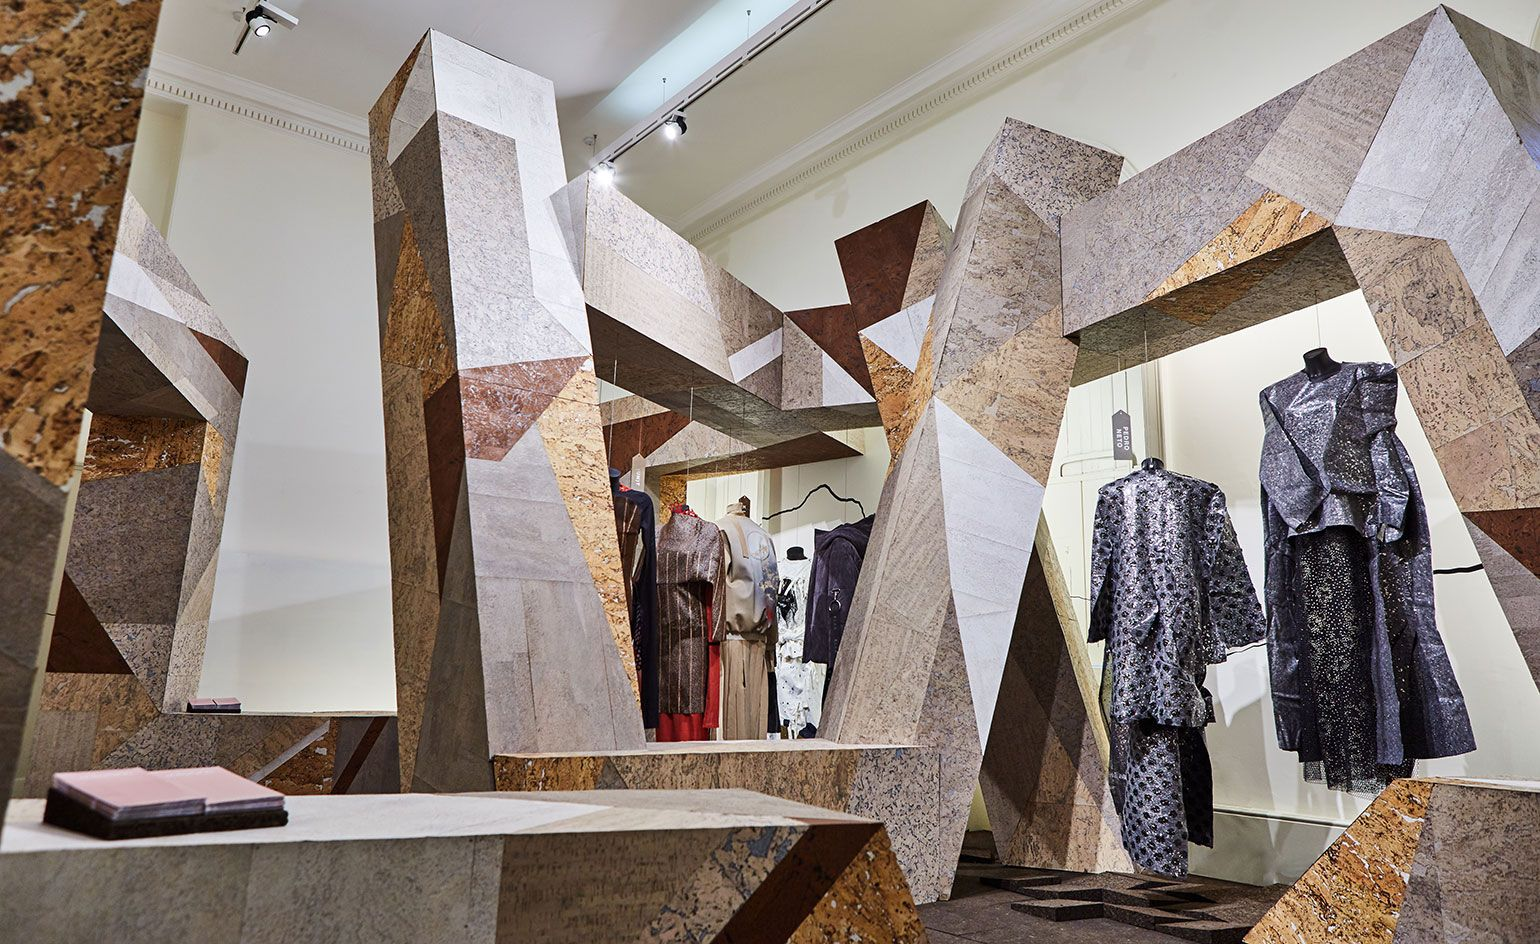 amorims cork installation for portugal at somerset house ifs 2016 london fashion week - Cork House 2016